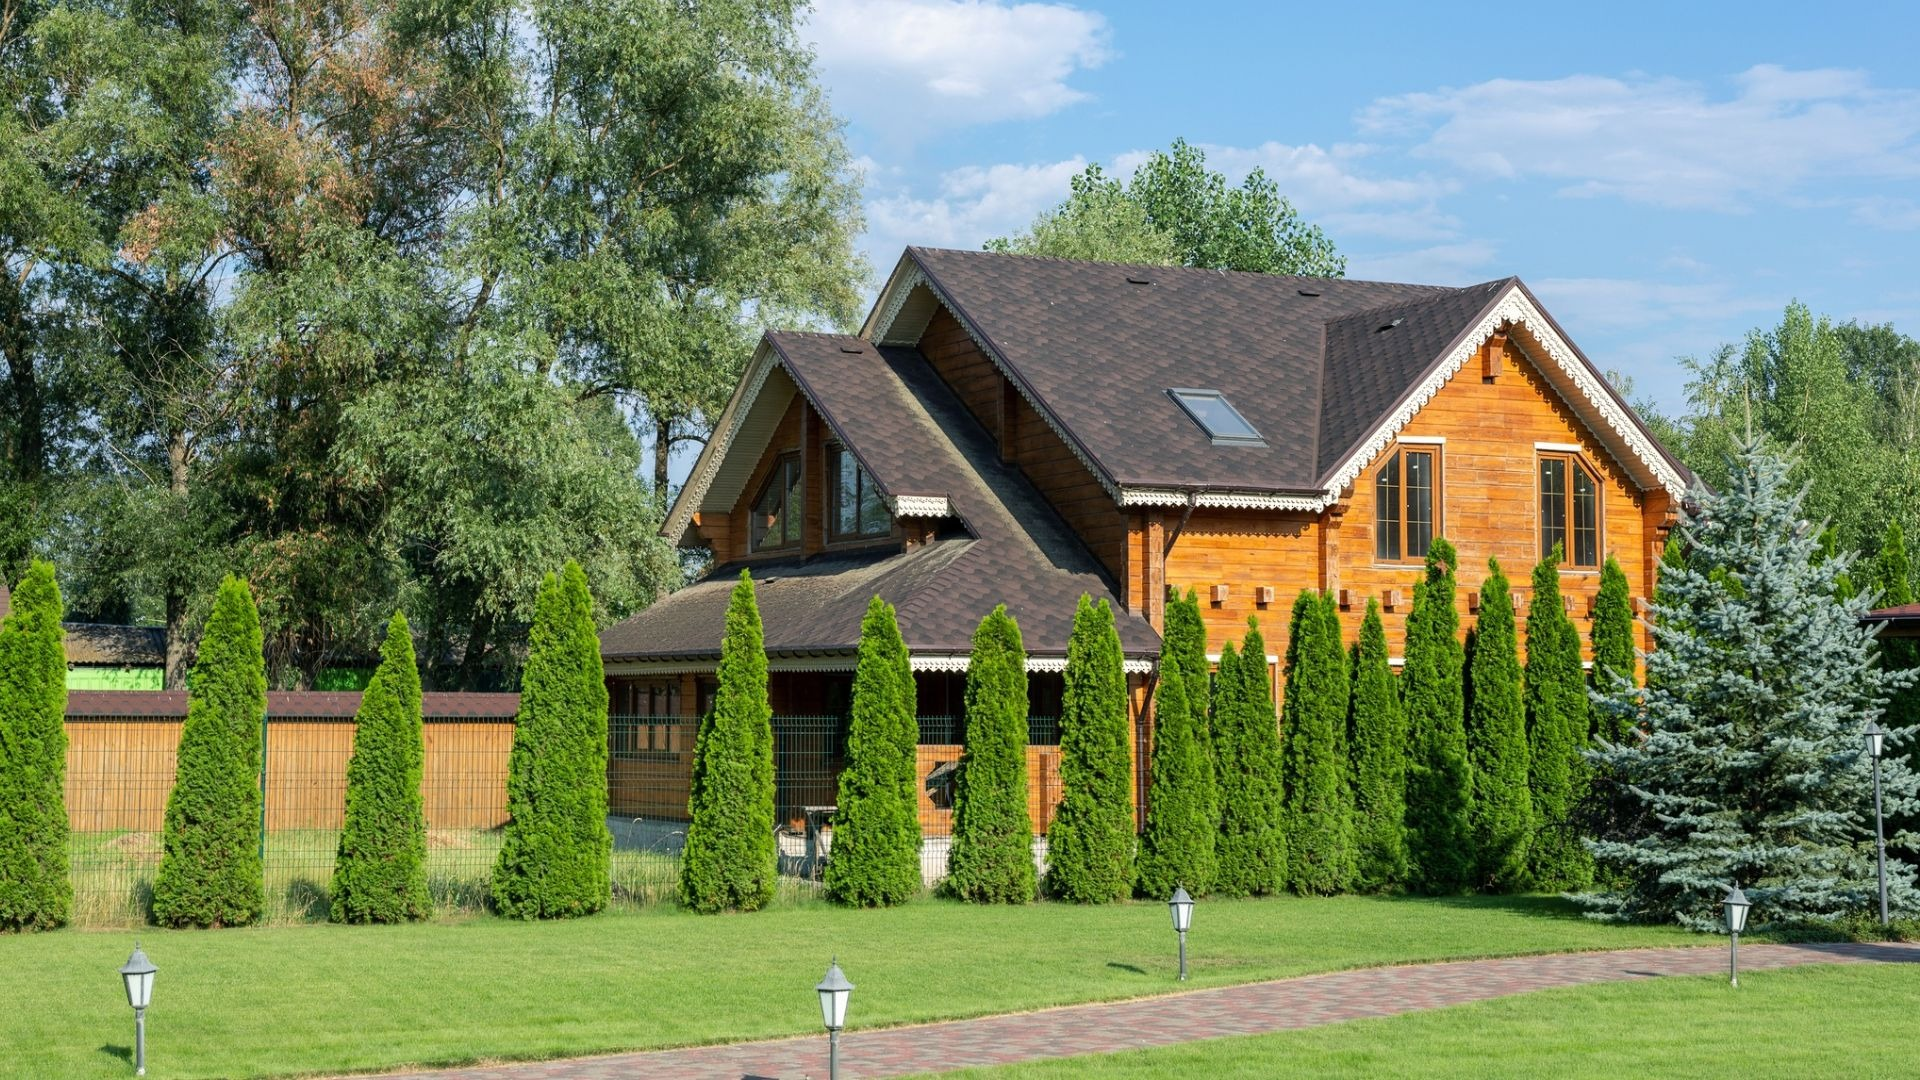 5 Tips To Landscape With Trees Arbor Day Blog